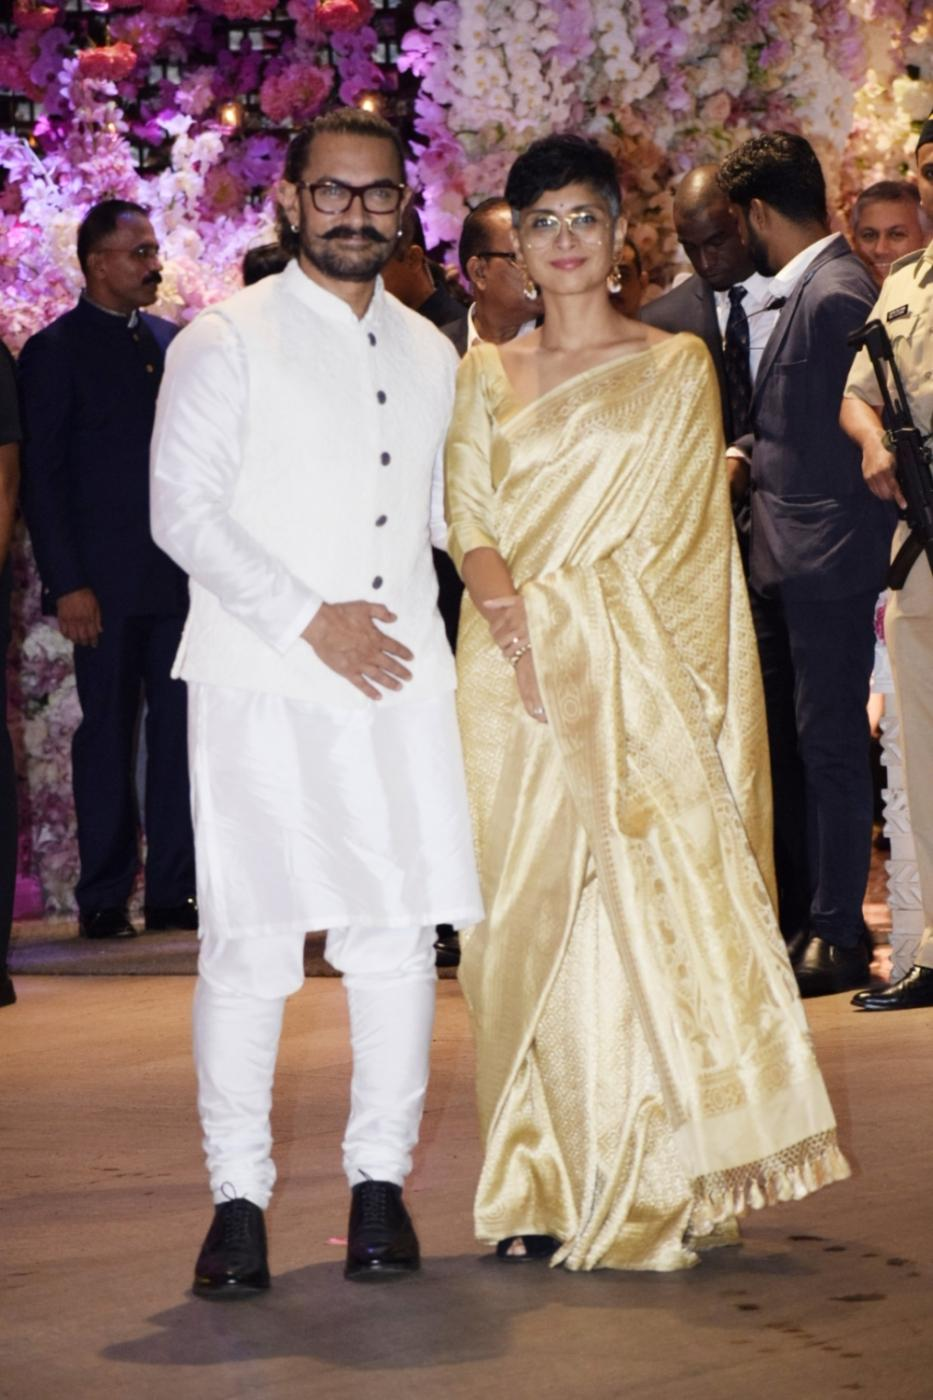 Mumbai: Actor Aamir Khan with his wife Kiran Rao at the engagement party of Reliance Industries Chairman Mukesh Ambani's son Akash Ambani and diamantaire Russell Mehta's daughter Shloka Mehta, at Antilia in Mumbai on June 30, 2018. (Photo: IANS) by .